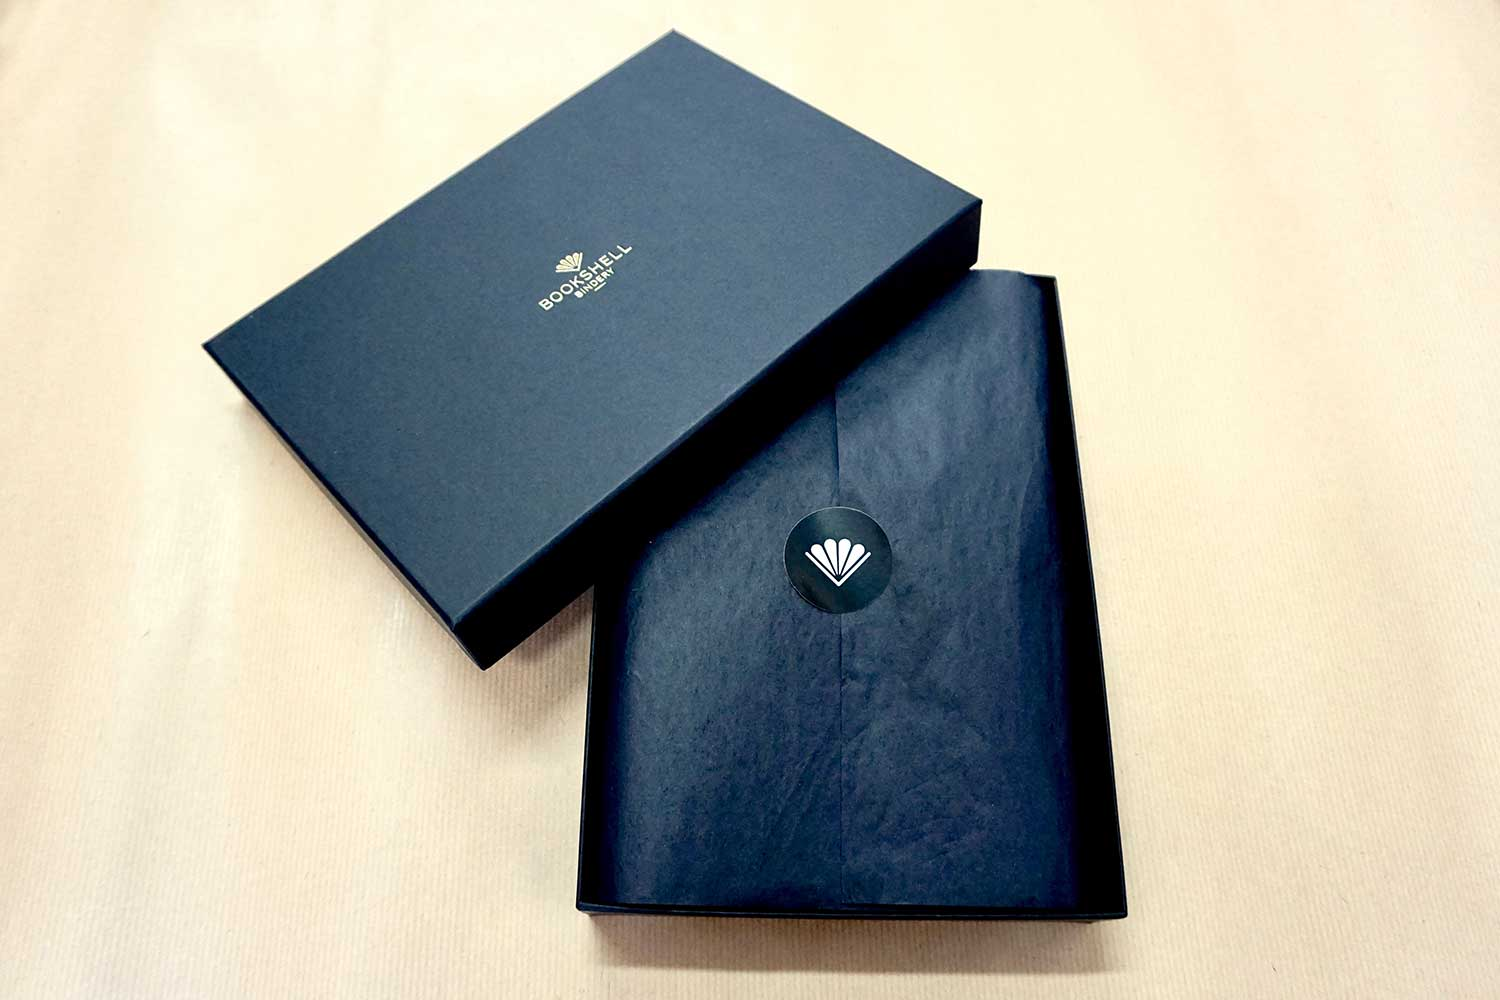 rustic leather guest book from Bookshell arrives ready to gift in beautiful packaging